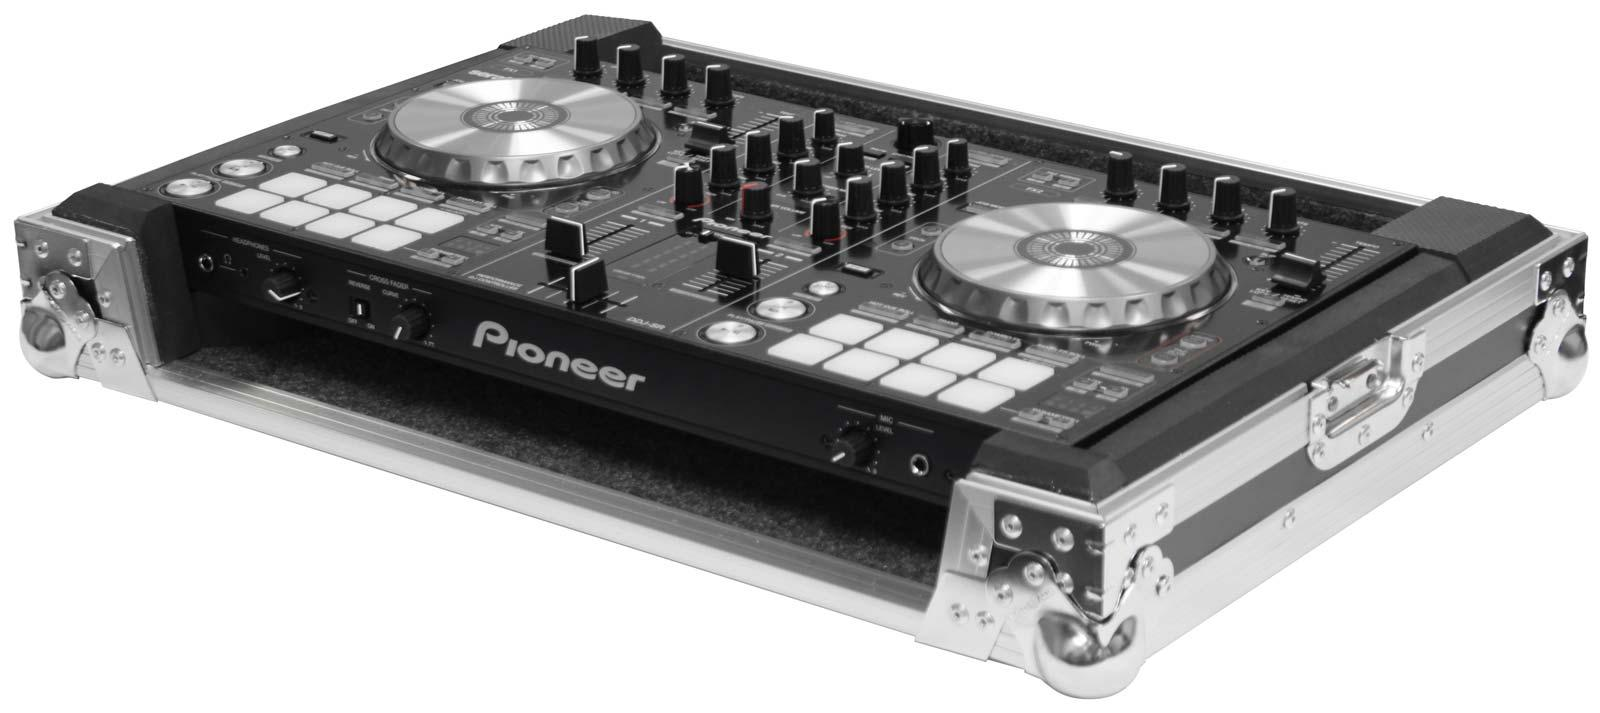 44265 likewise Overview moreover B00EYZMD16 together with 5692 likewise Odyssey Frpiddjsr Flight Ready Case For Pioneer Ddj Sr. on pioneer mic